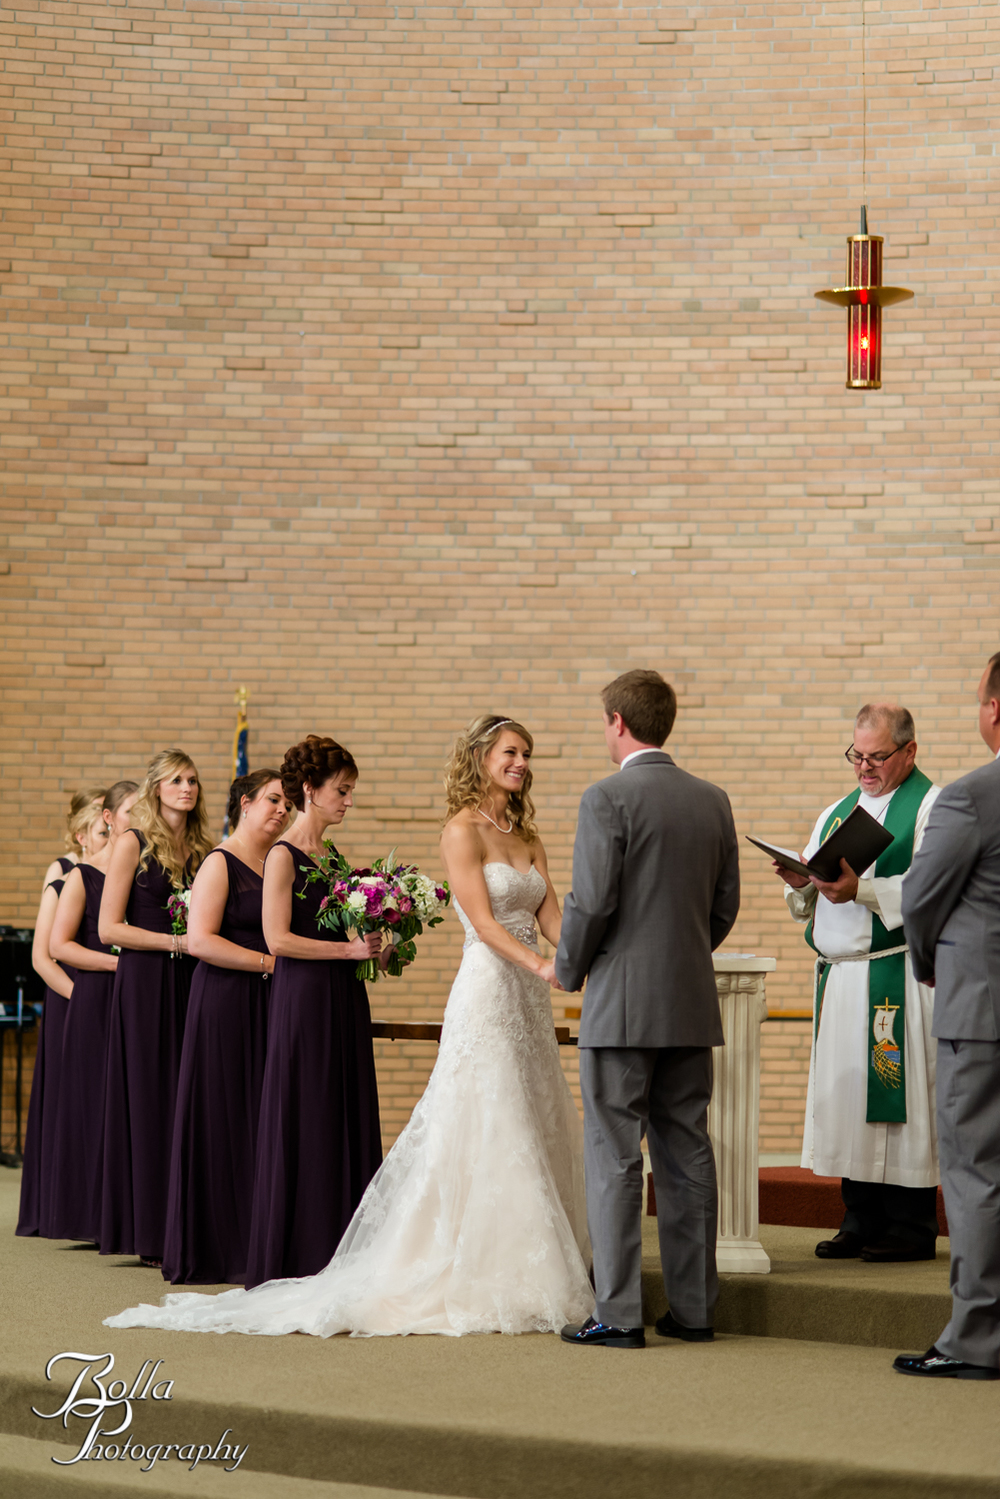 Bolla_Photography_St_Louis_wedding_photographer-0196.jpg